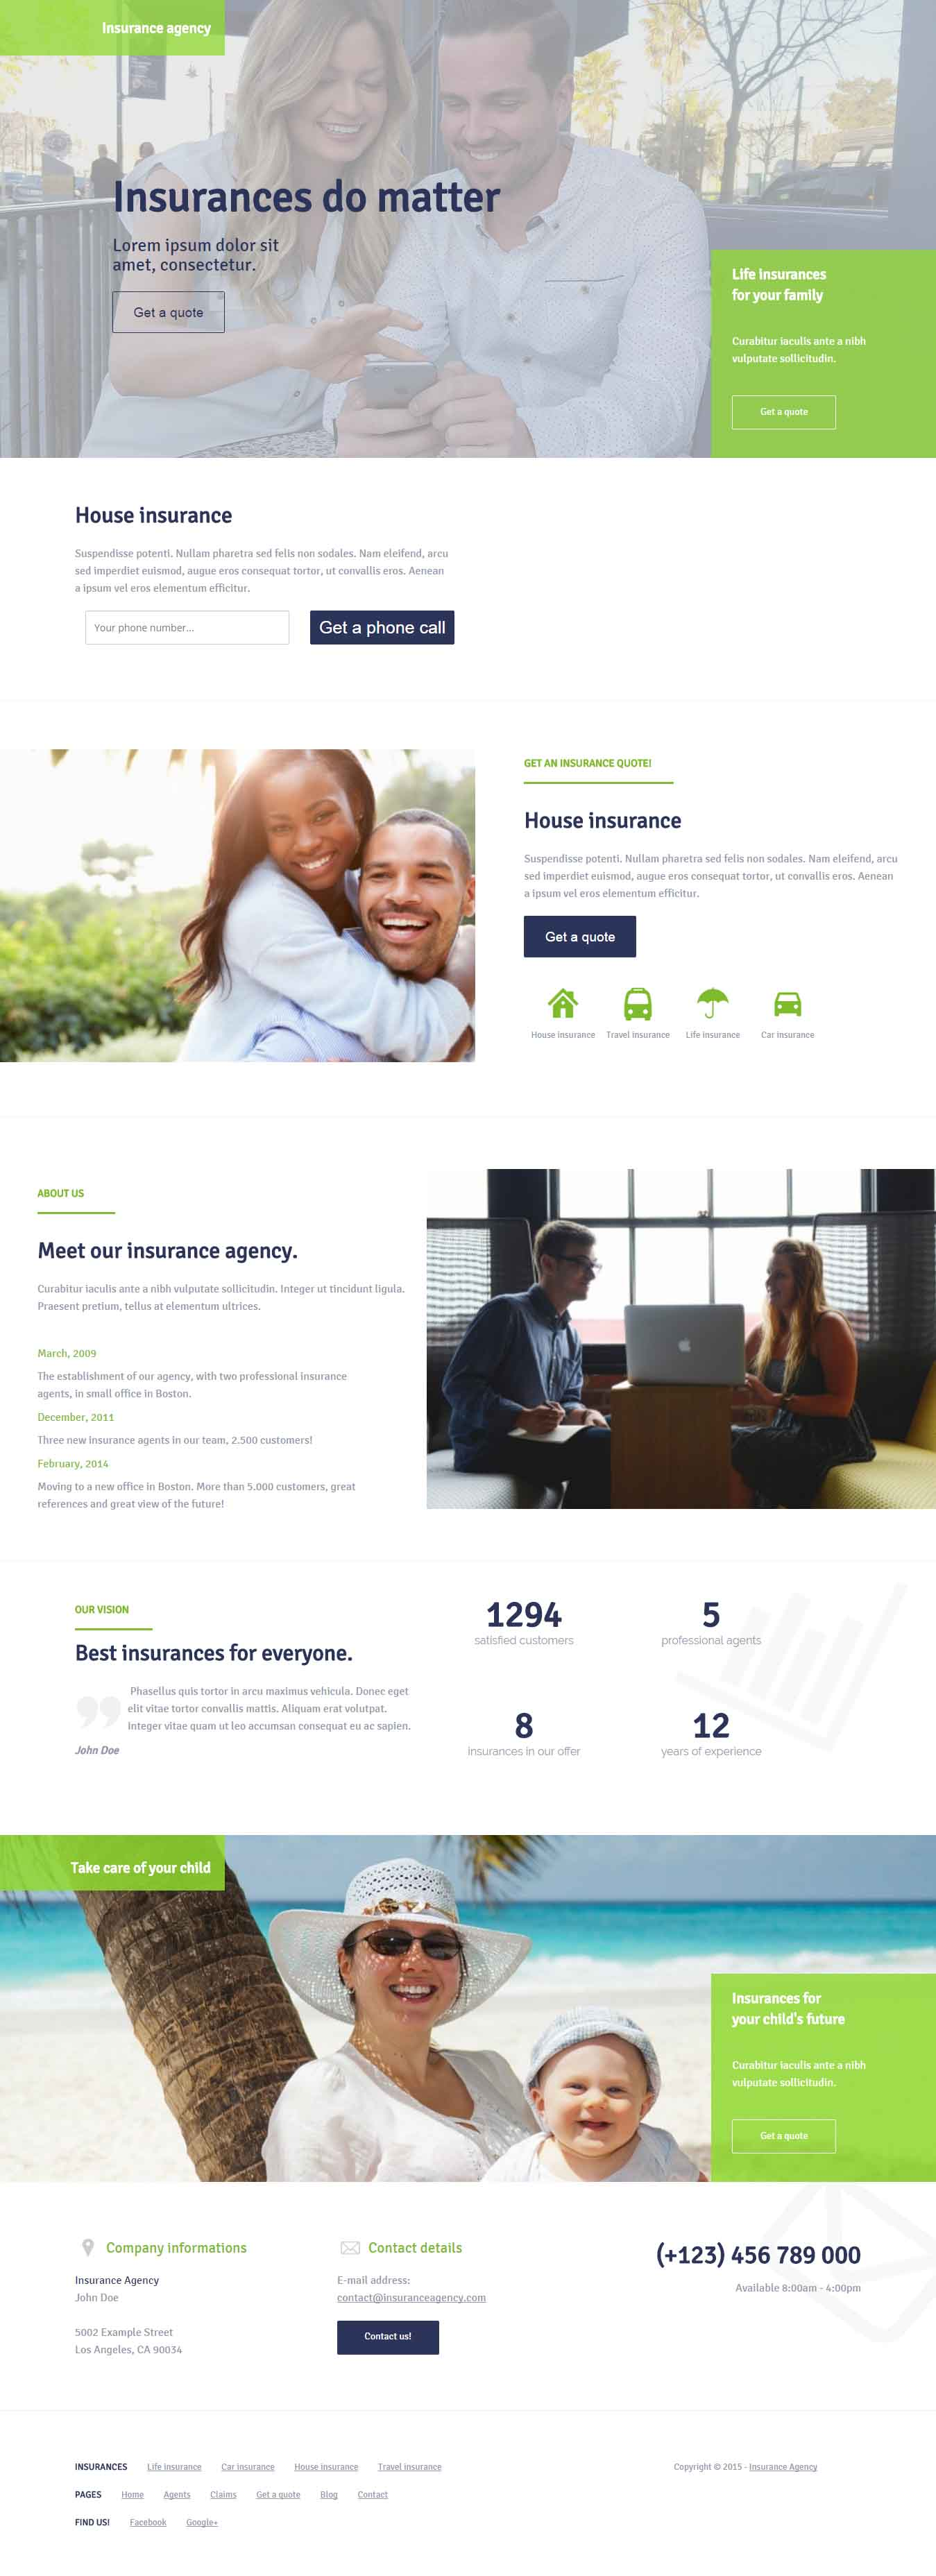 House Insurance Landing Page Template